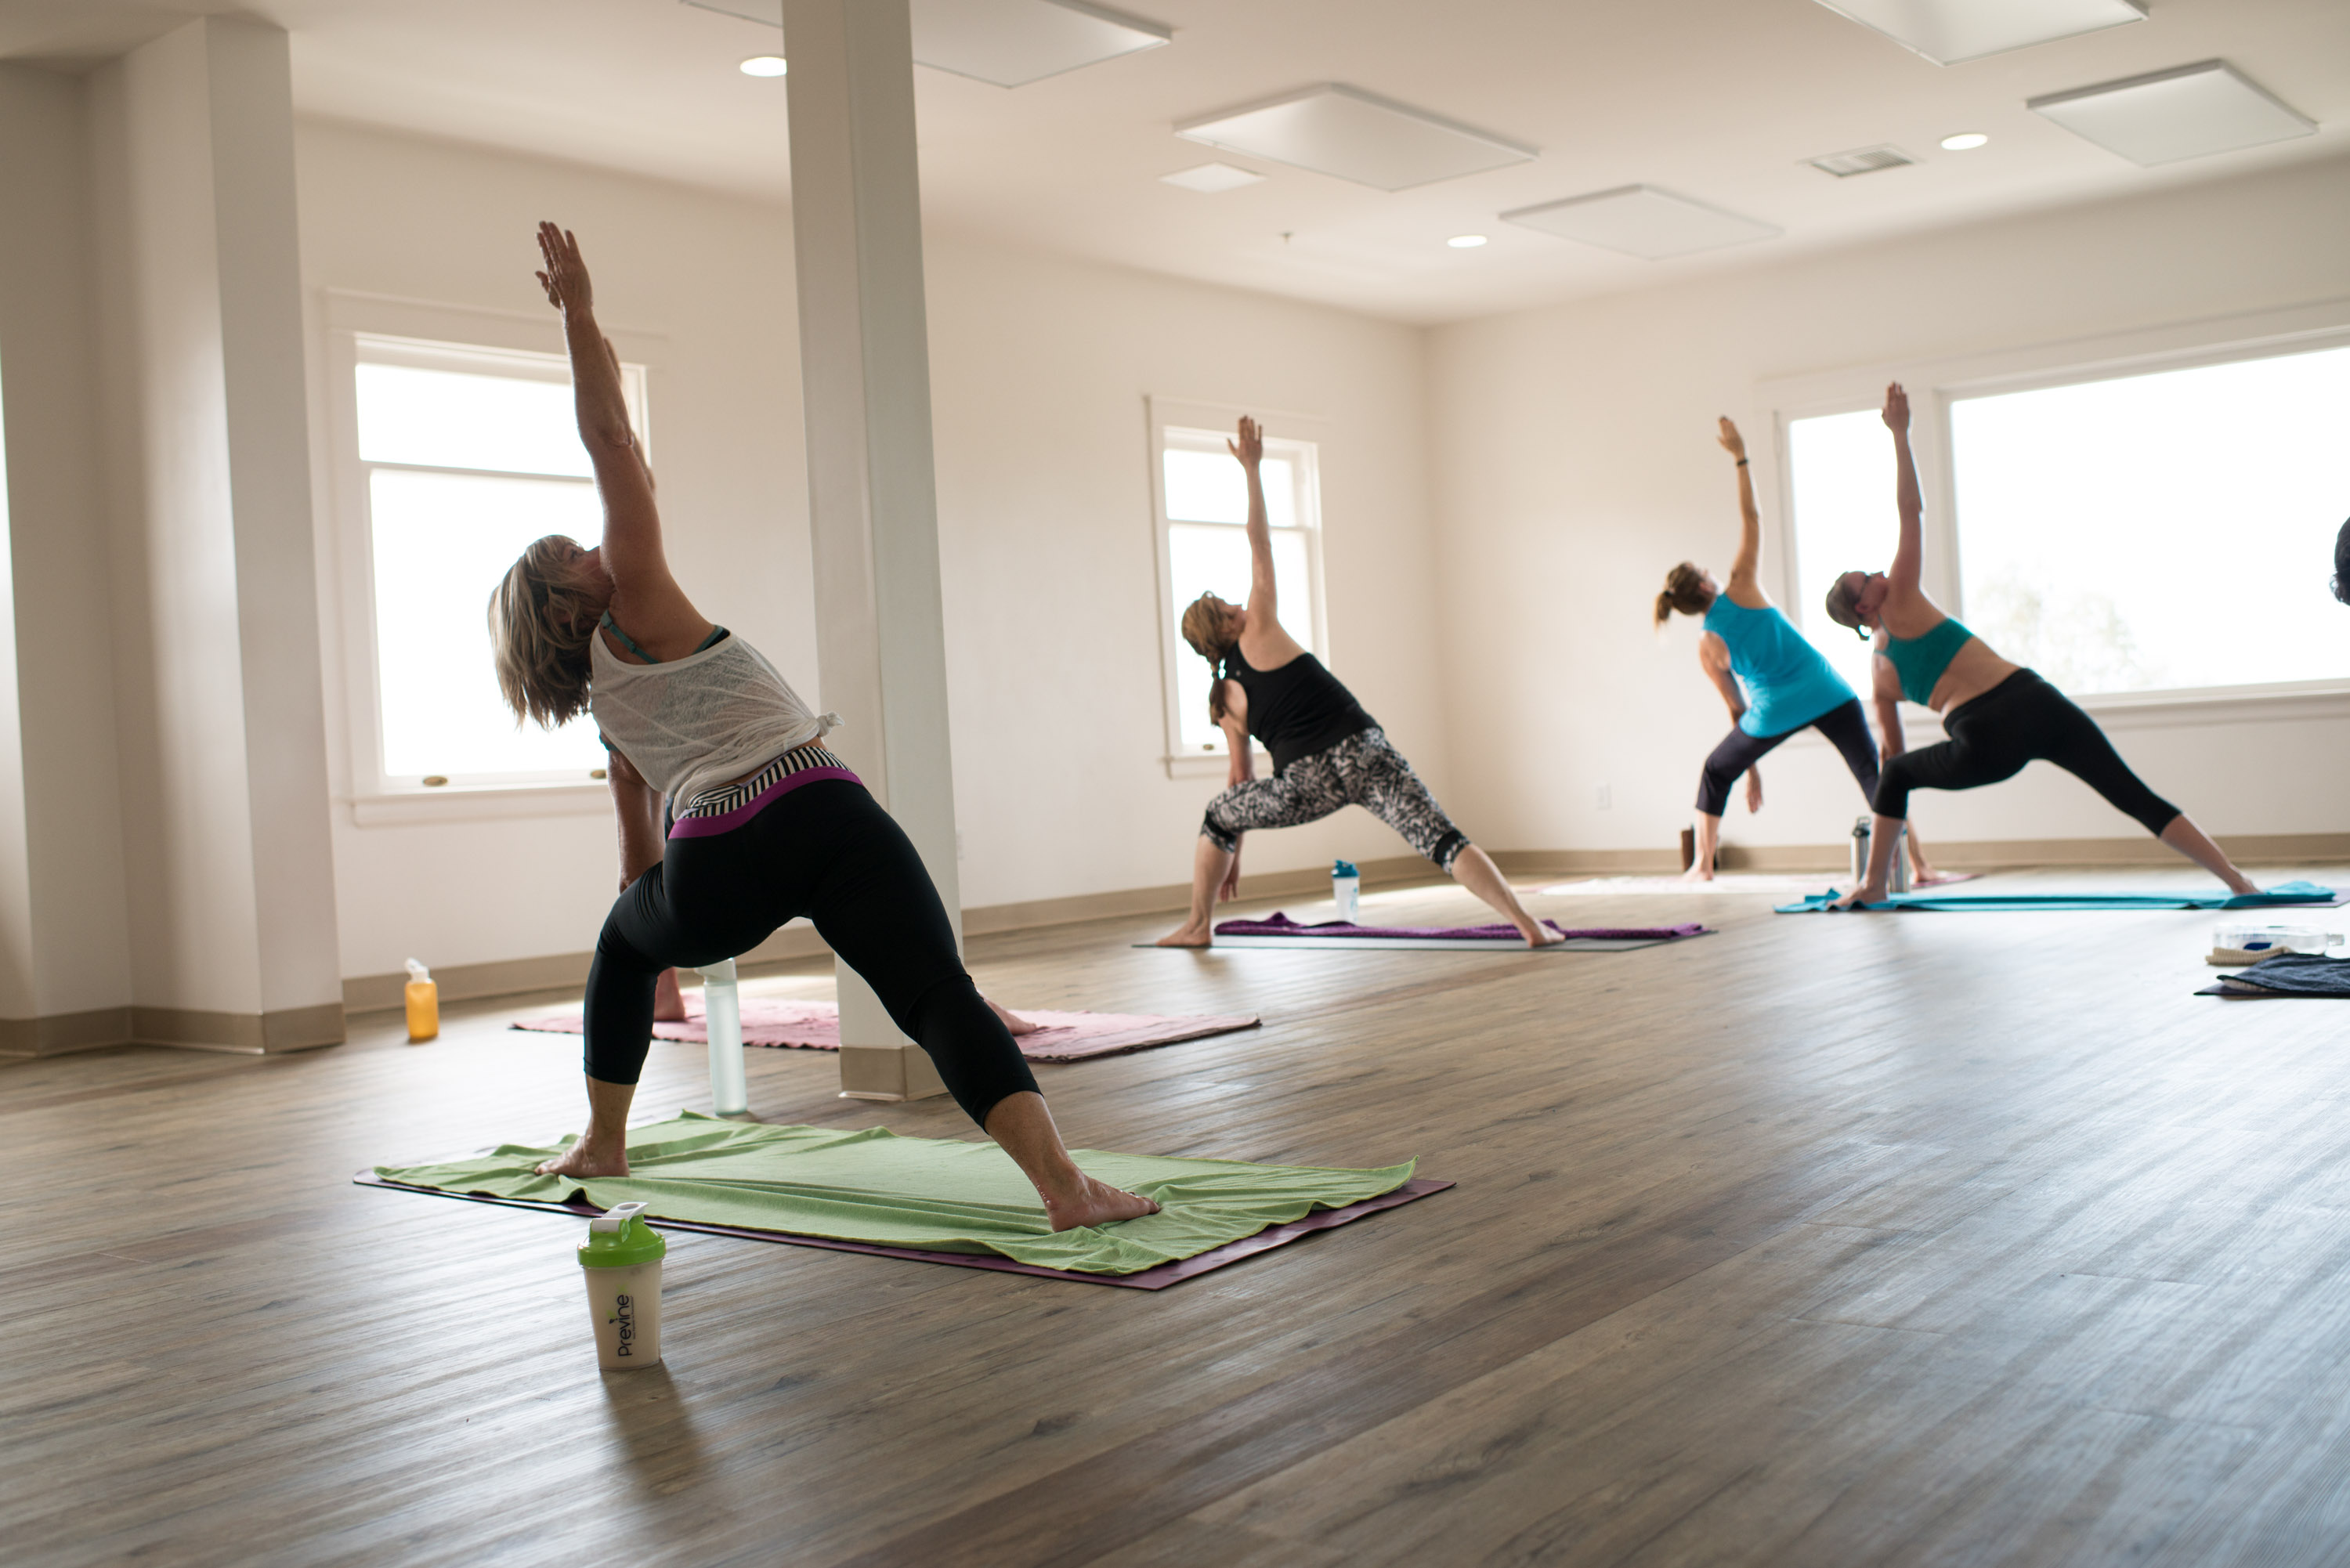 Exercise: The 5 Pillars of Health